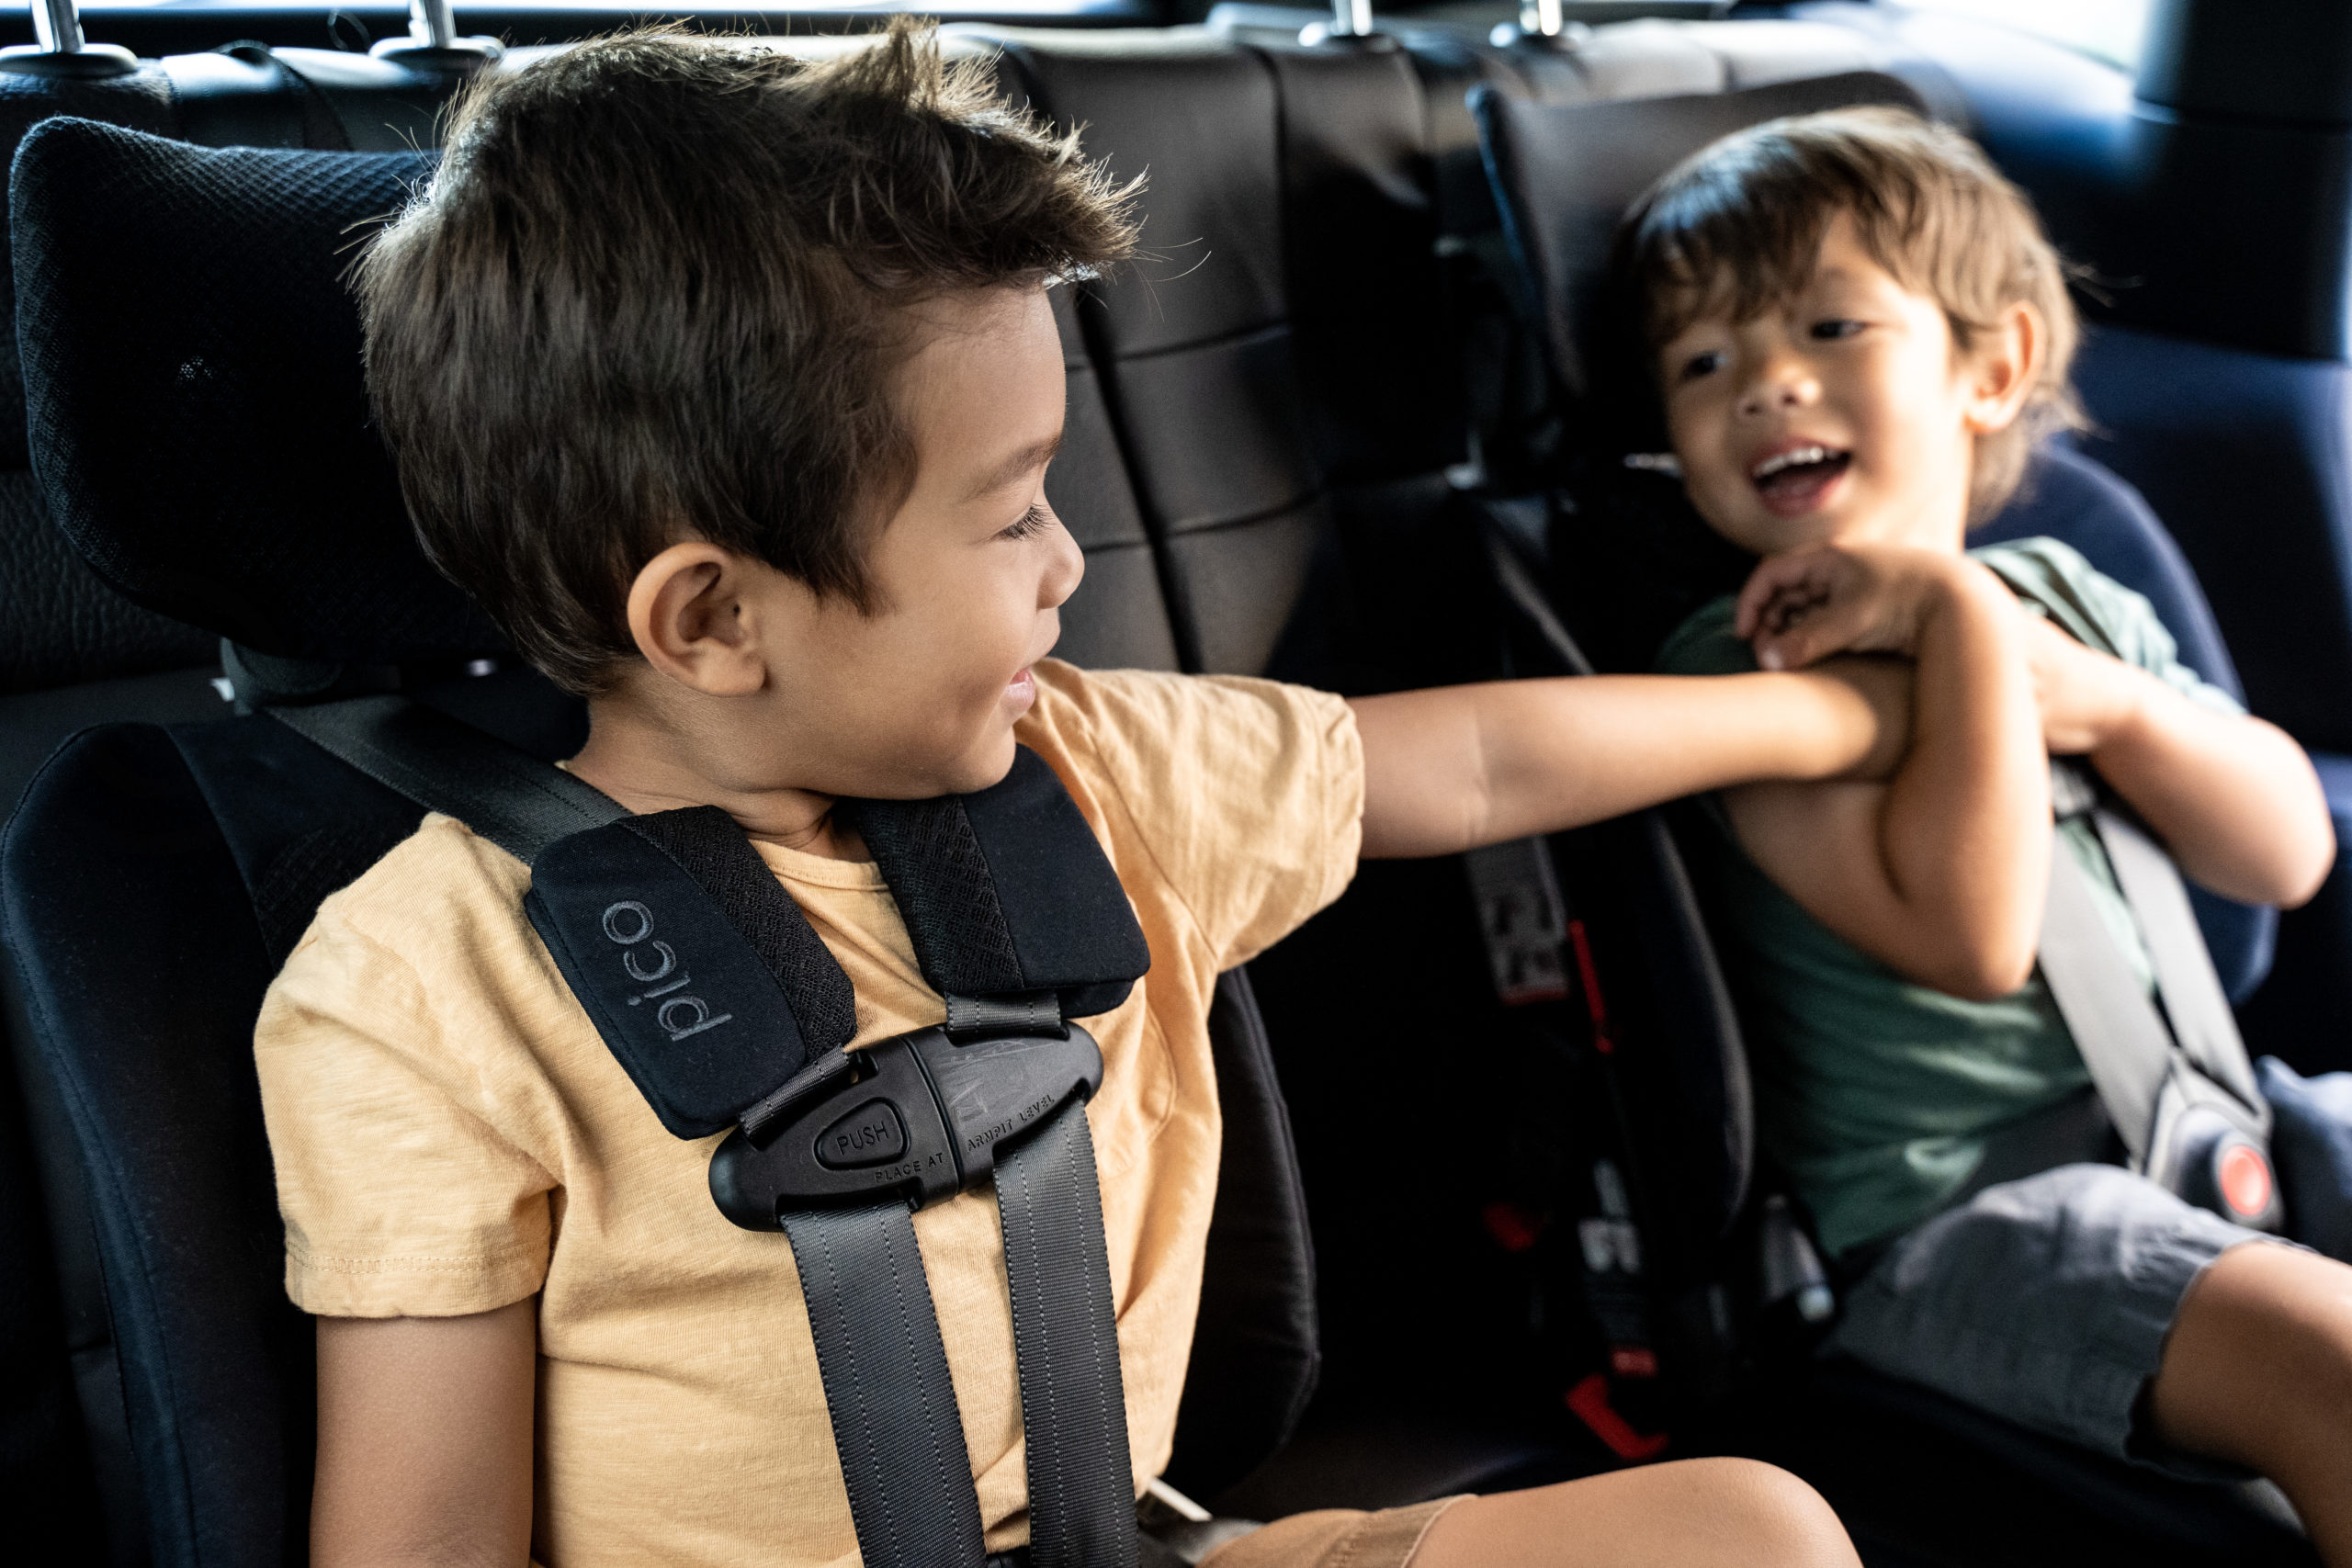 Traveling with car seats the easier way with WAYB's Pico